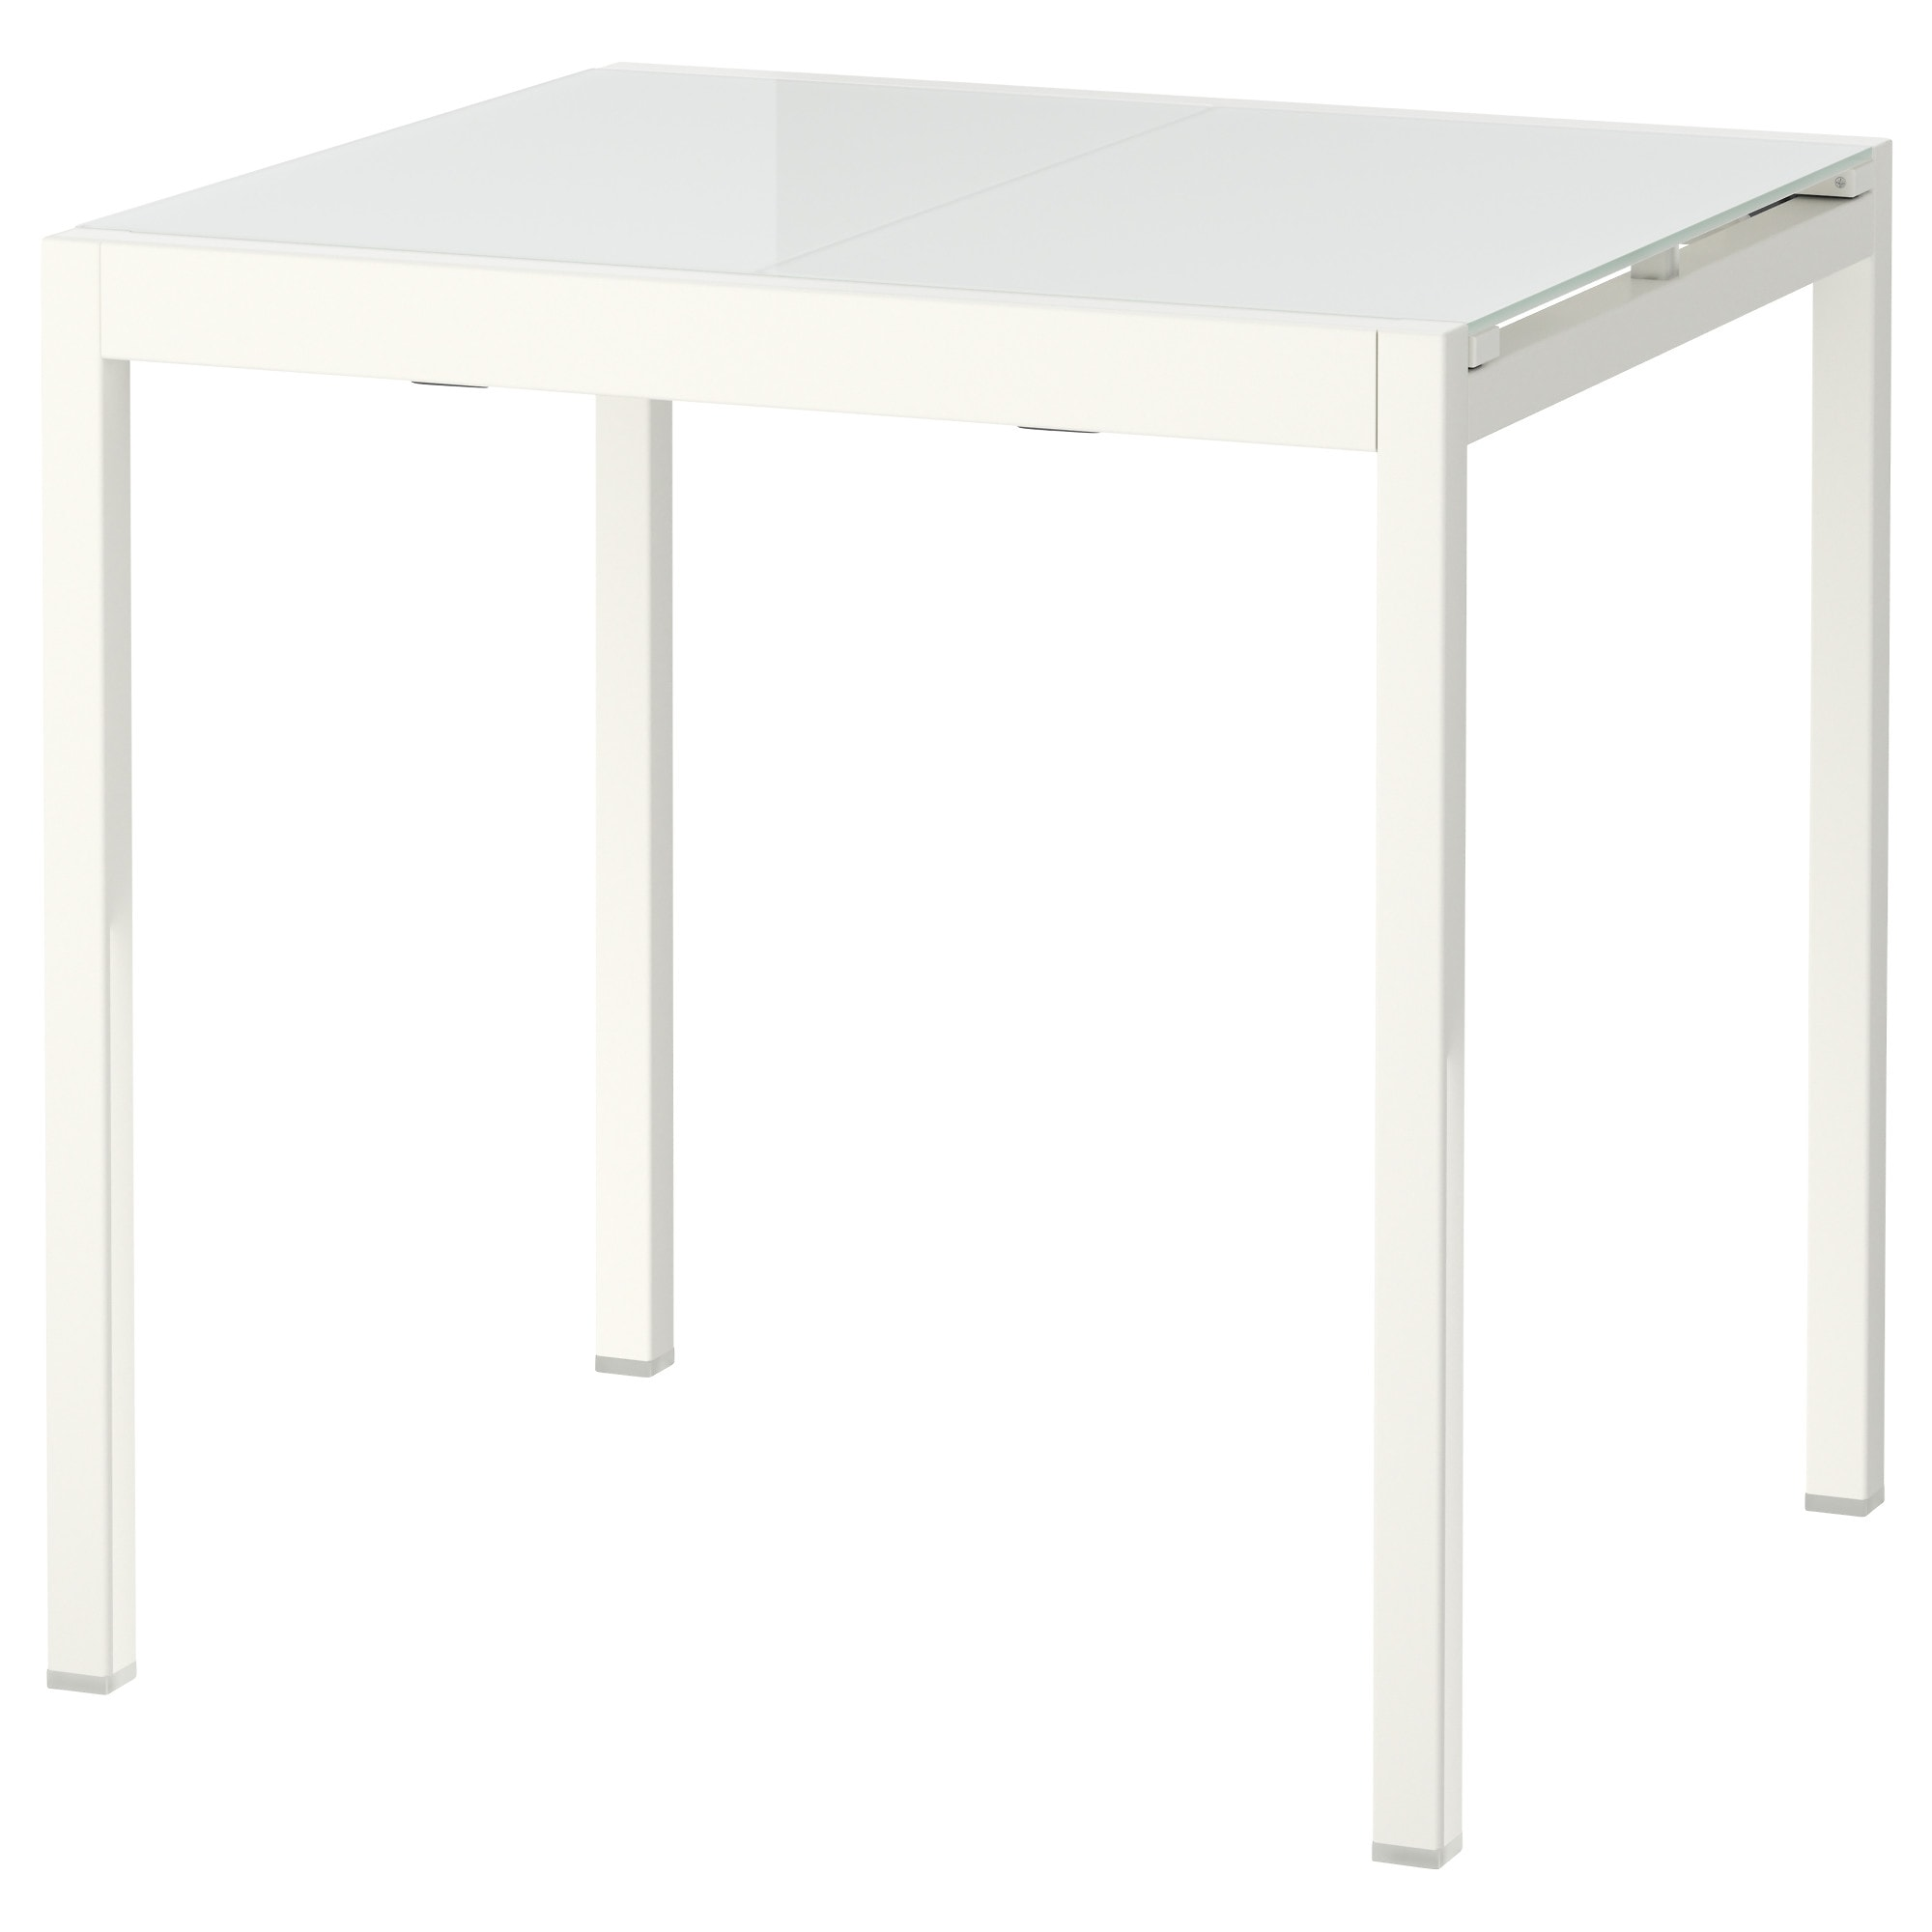 table blanche ronde ikea table blanche ronde ikea with table blanche ronde ikea kullaberg. Black Bedroom Furniture Sets. Home Design Ideas